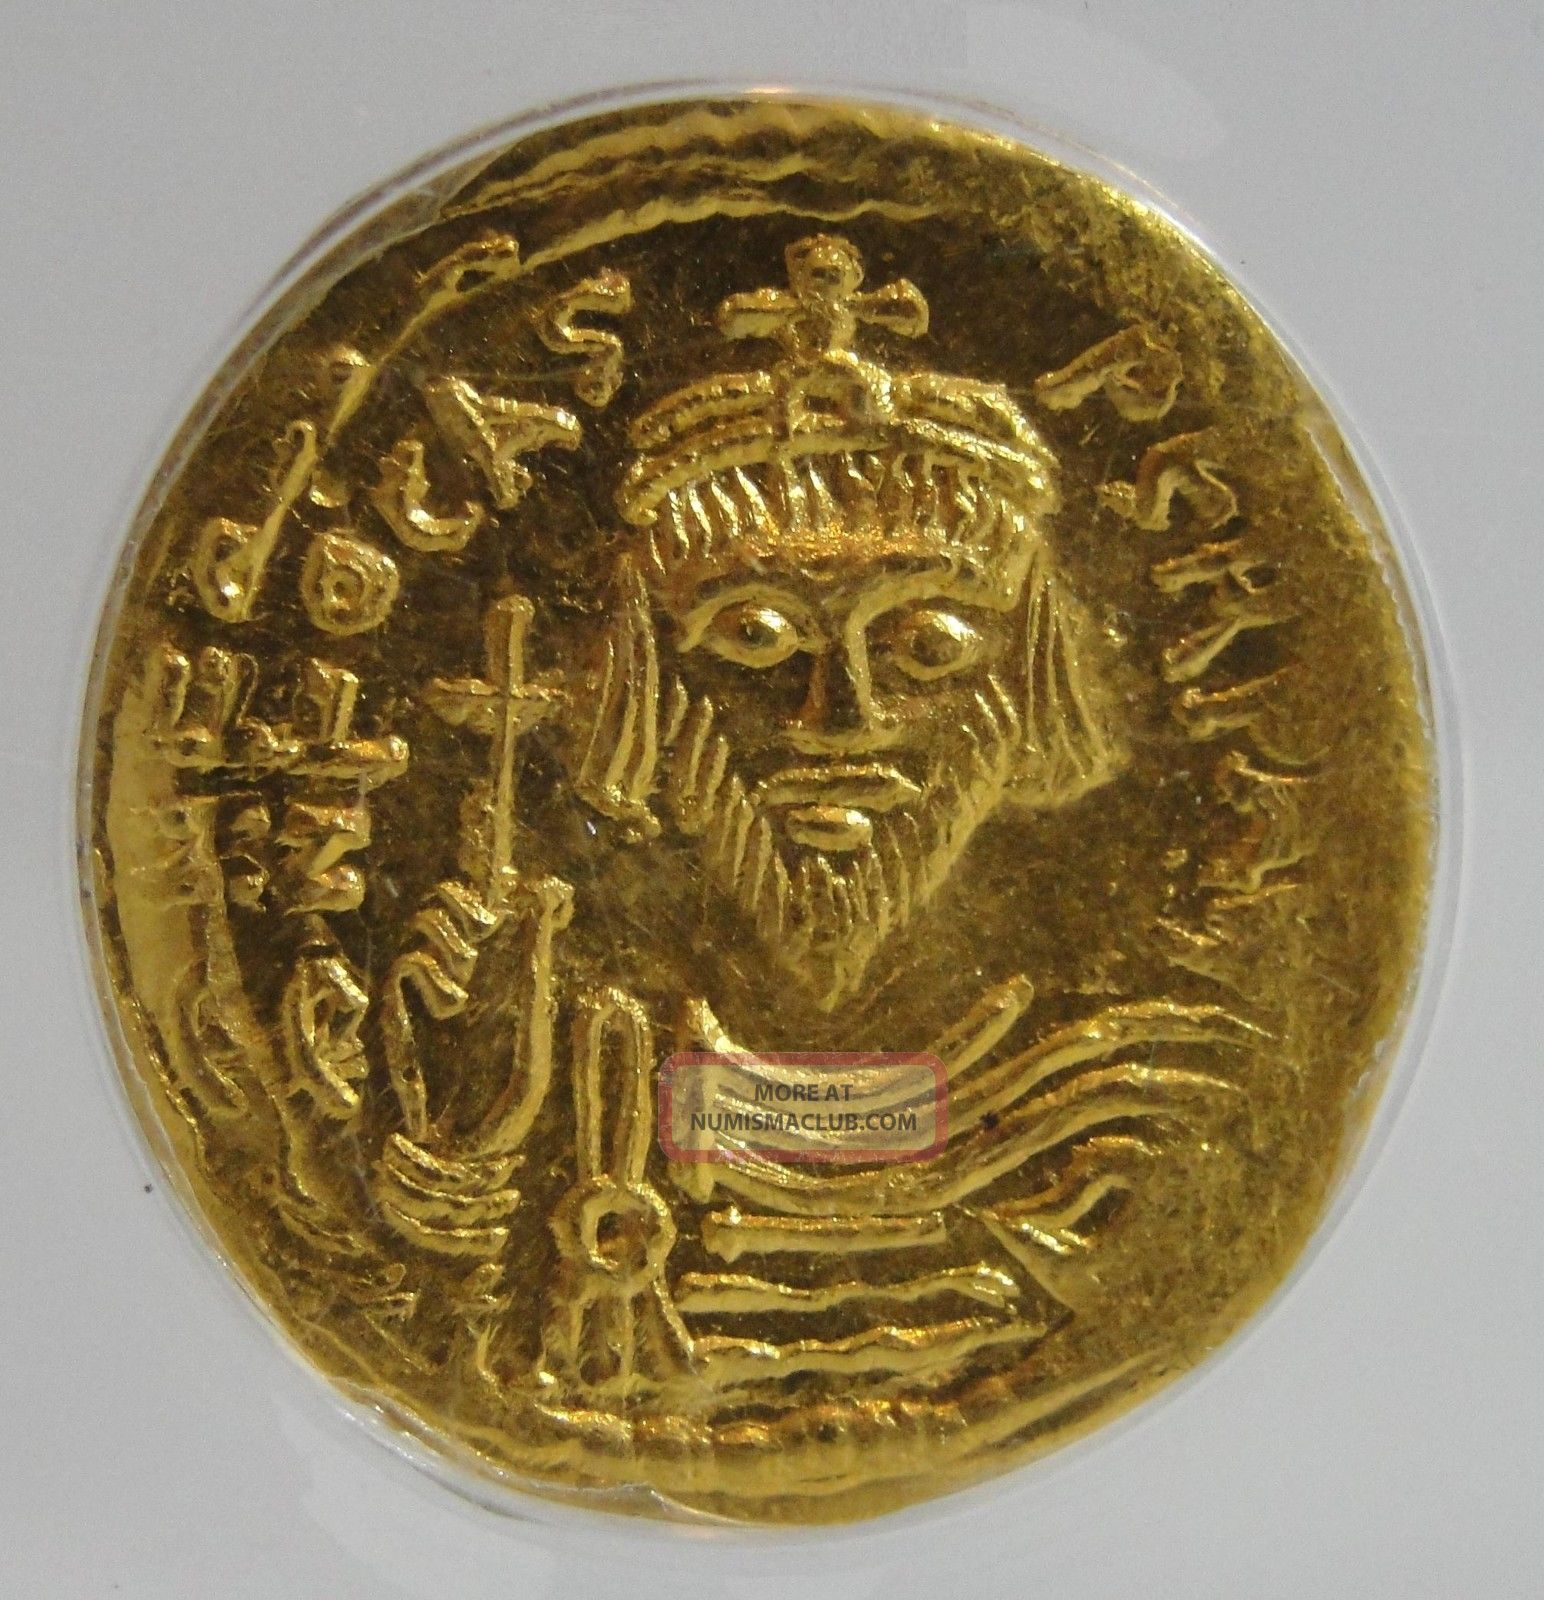 Rare Anciemt Byzantine Empire Gold Coin Av Solidus Phocas Ad 602 - 610,  Anacs Ms60 Coins: Ancient photo